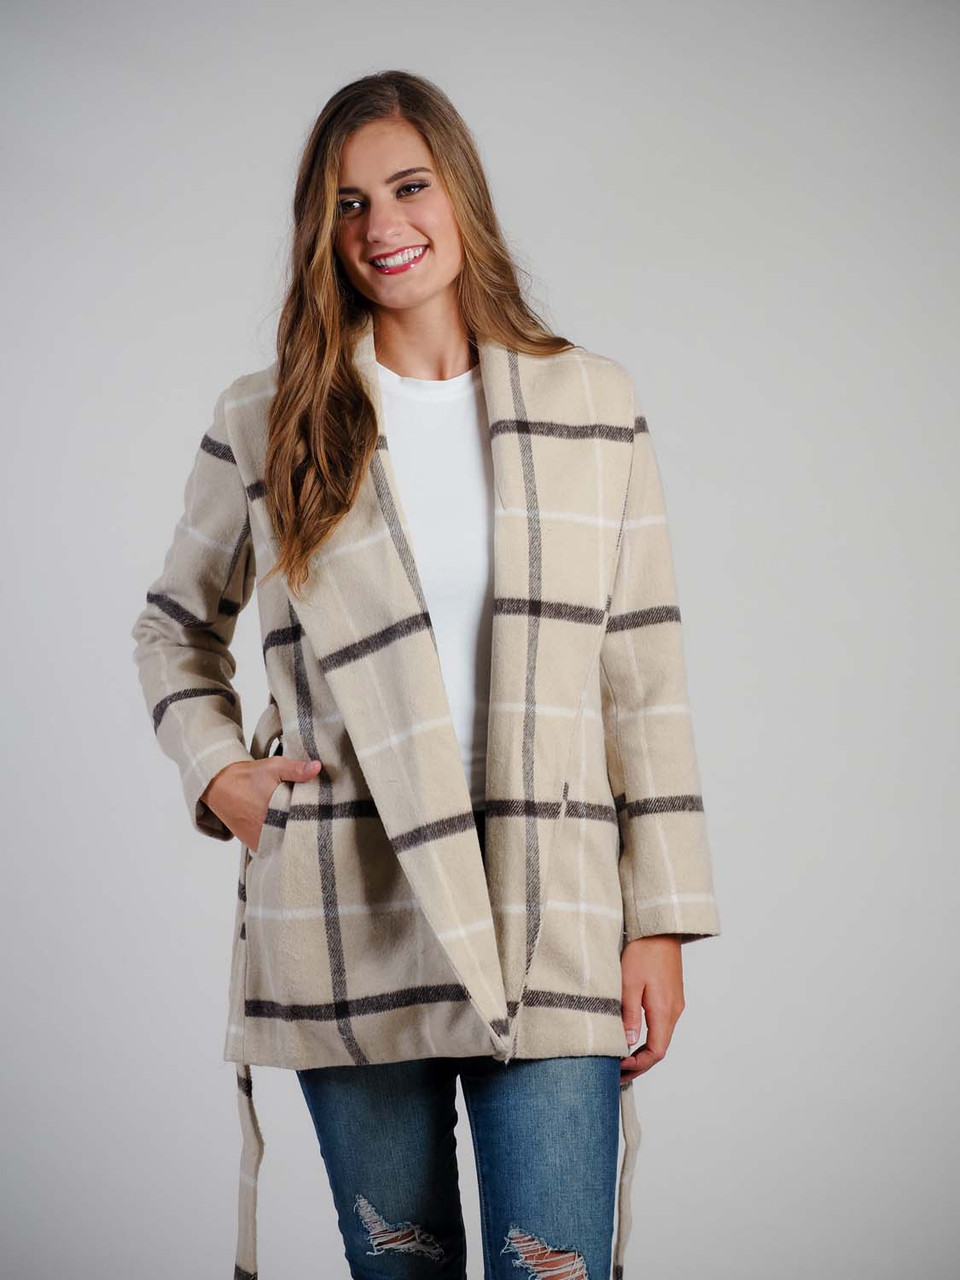 Tan, black, and white plaid coat features a relaxed fit, oversized lapel, matching belt to tie at waist, and a lined interior